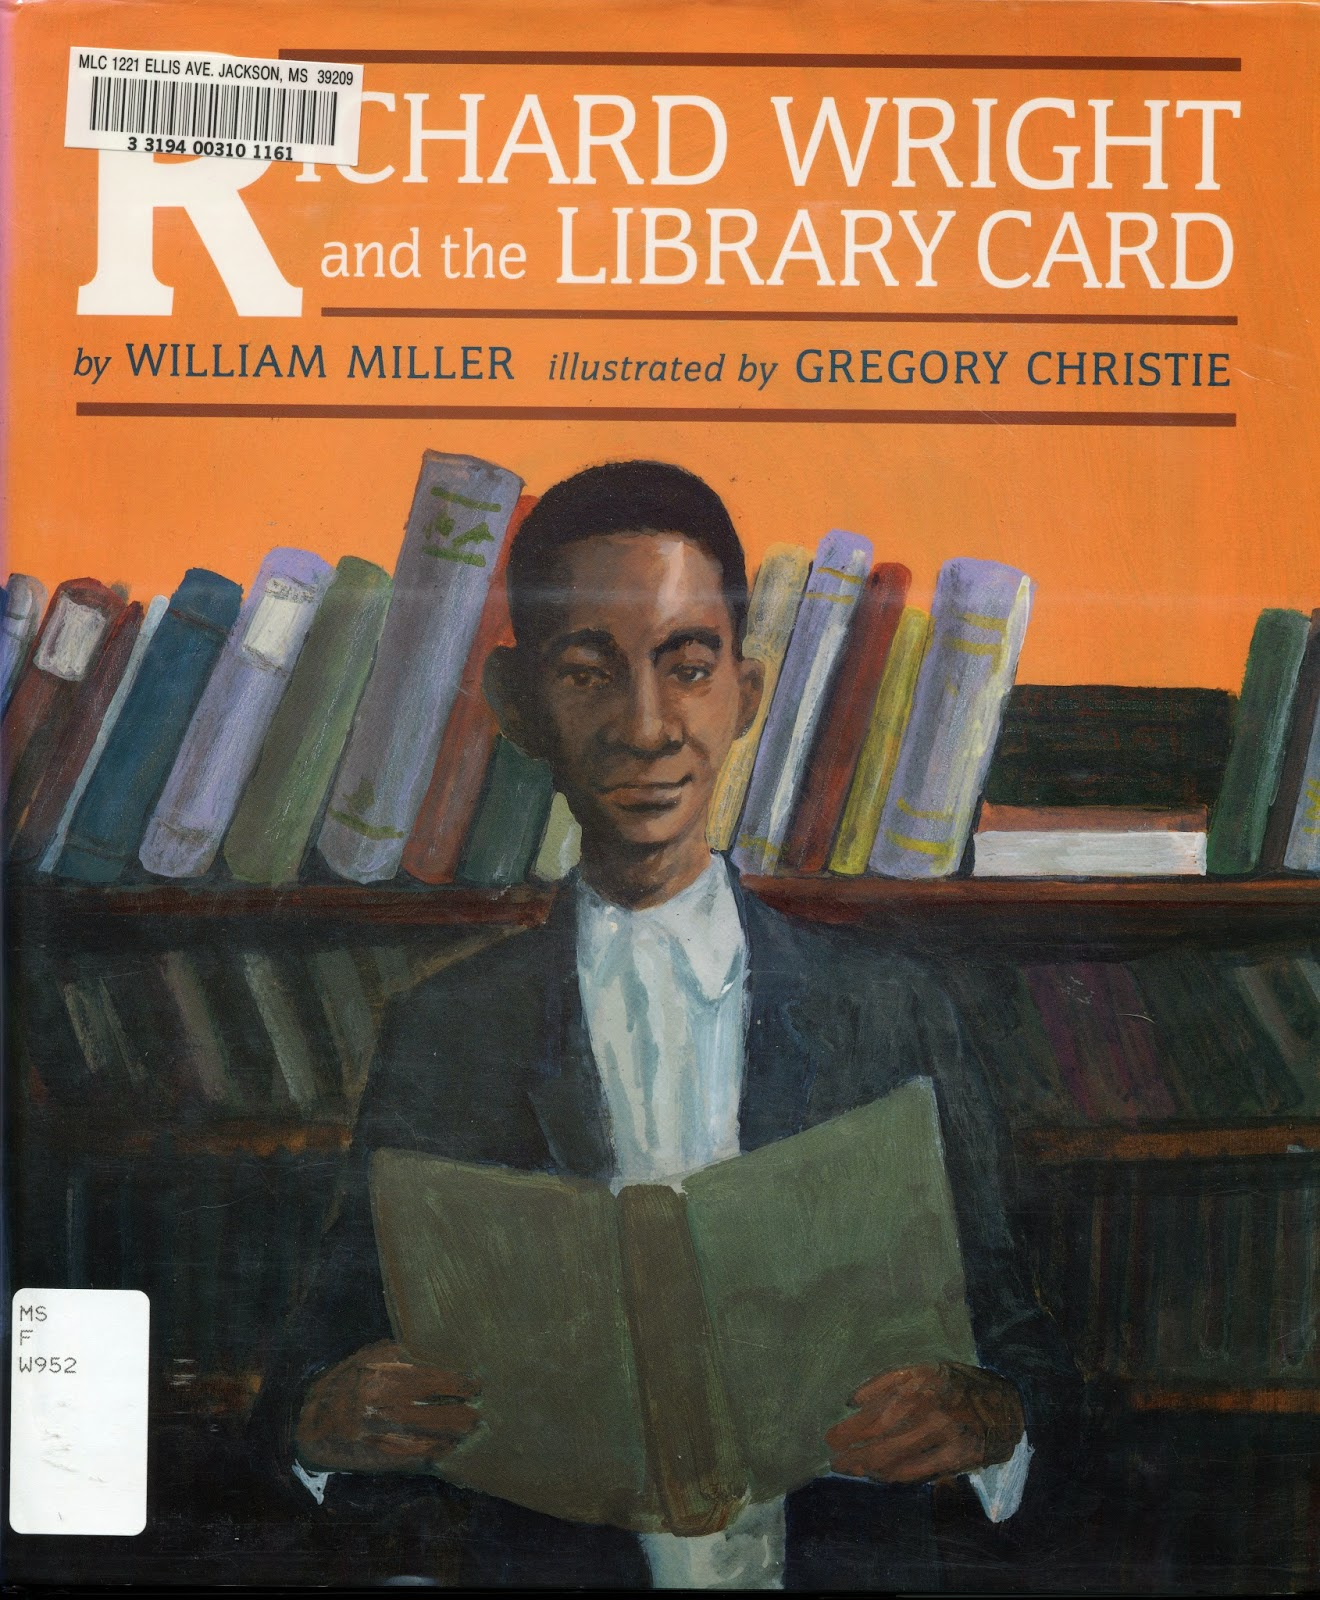 richard wright the library card Richard wright and the library card by william miller starting at $099 richard wright and the library card has 4 available editions to buy at alibris.